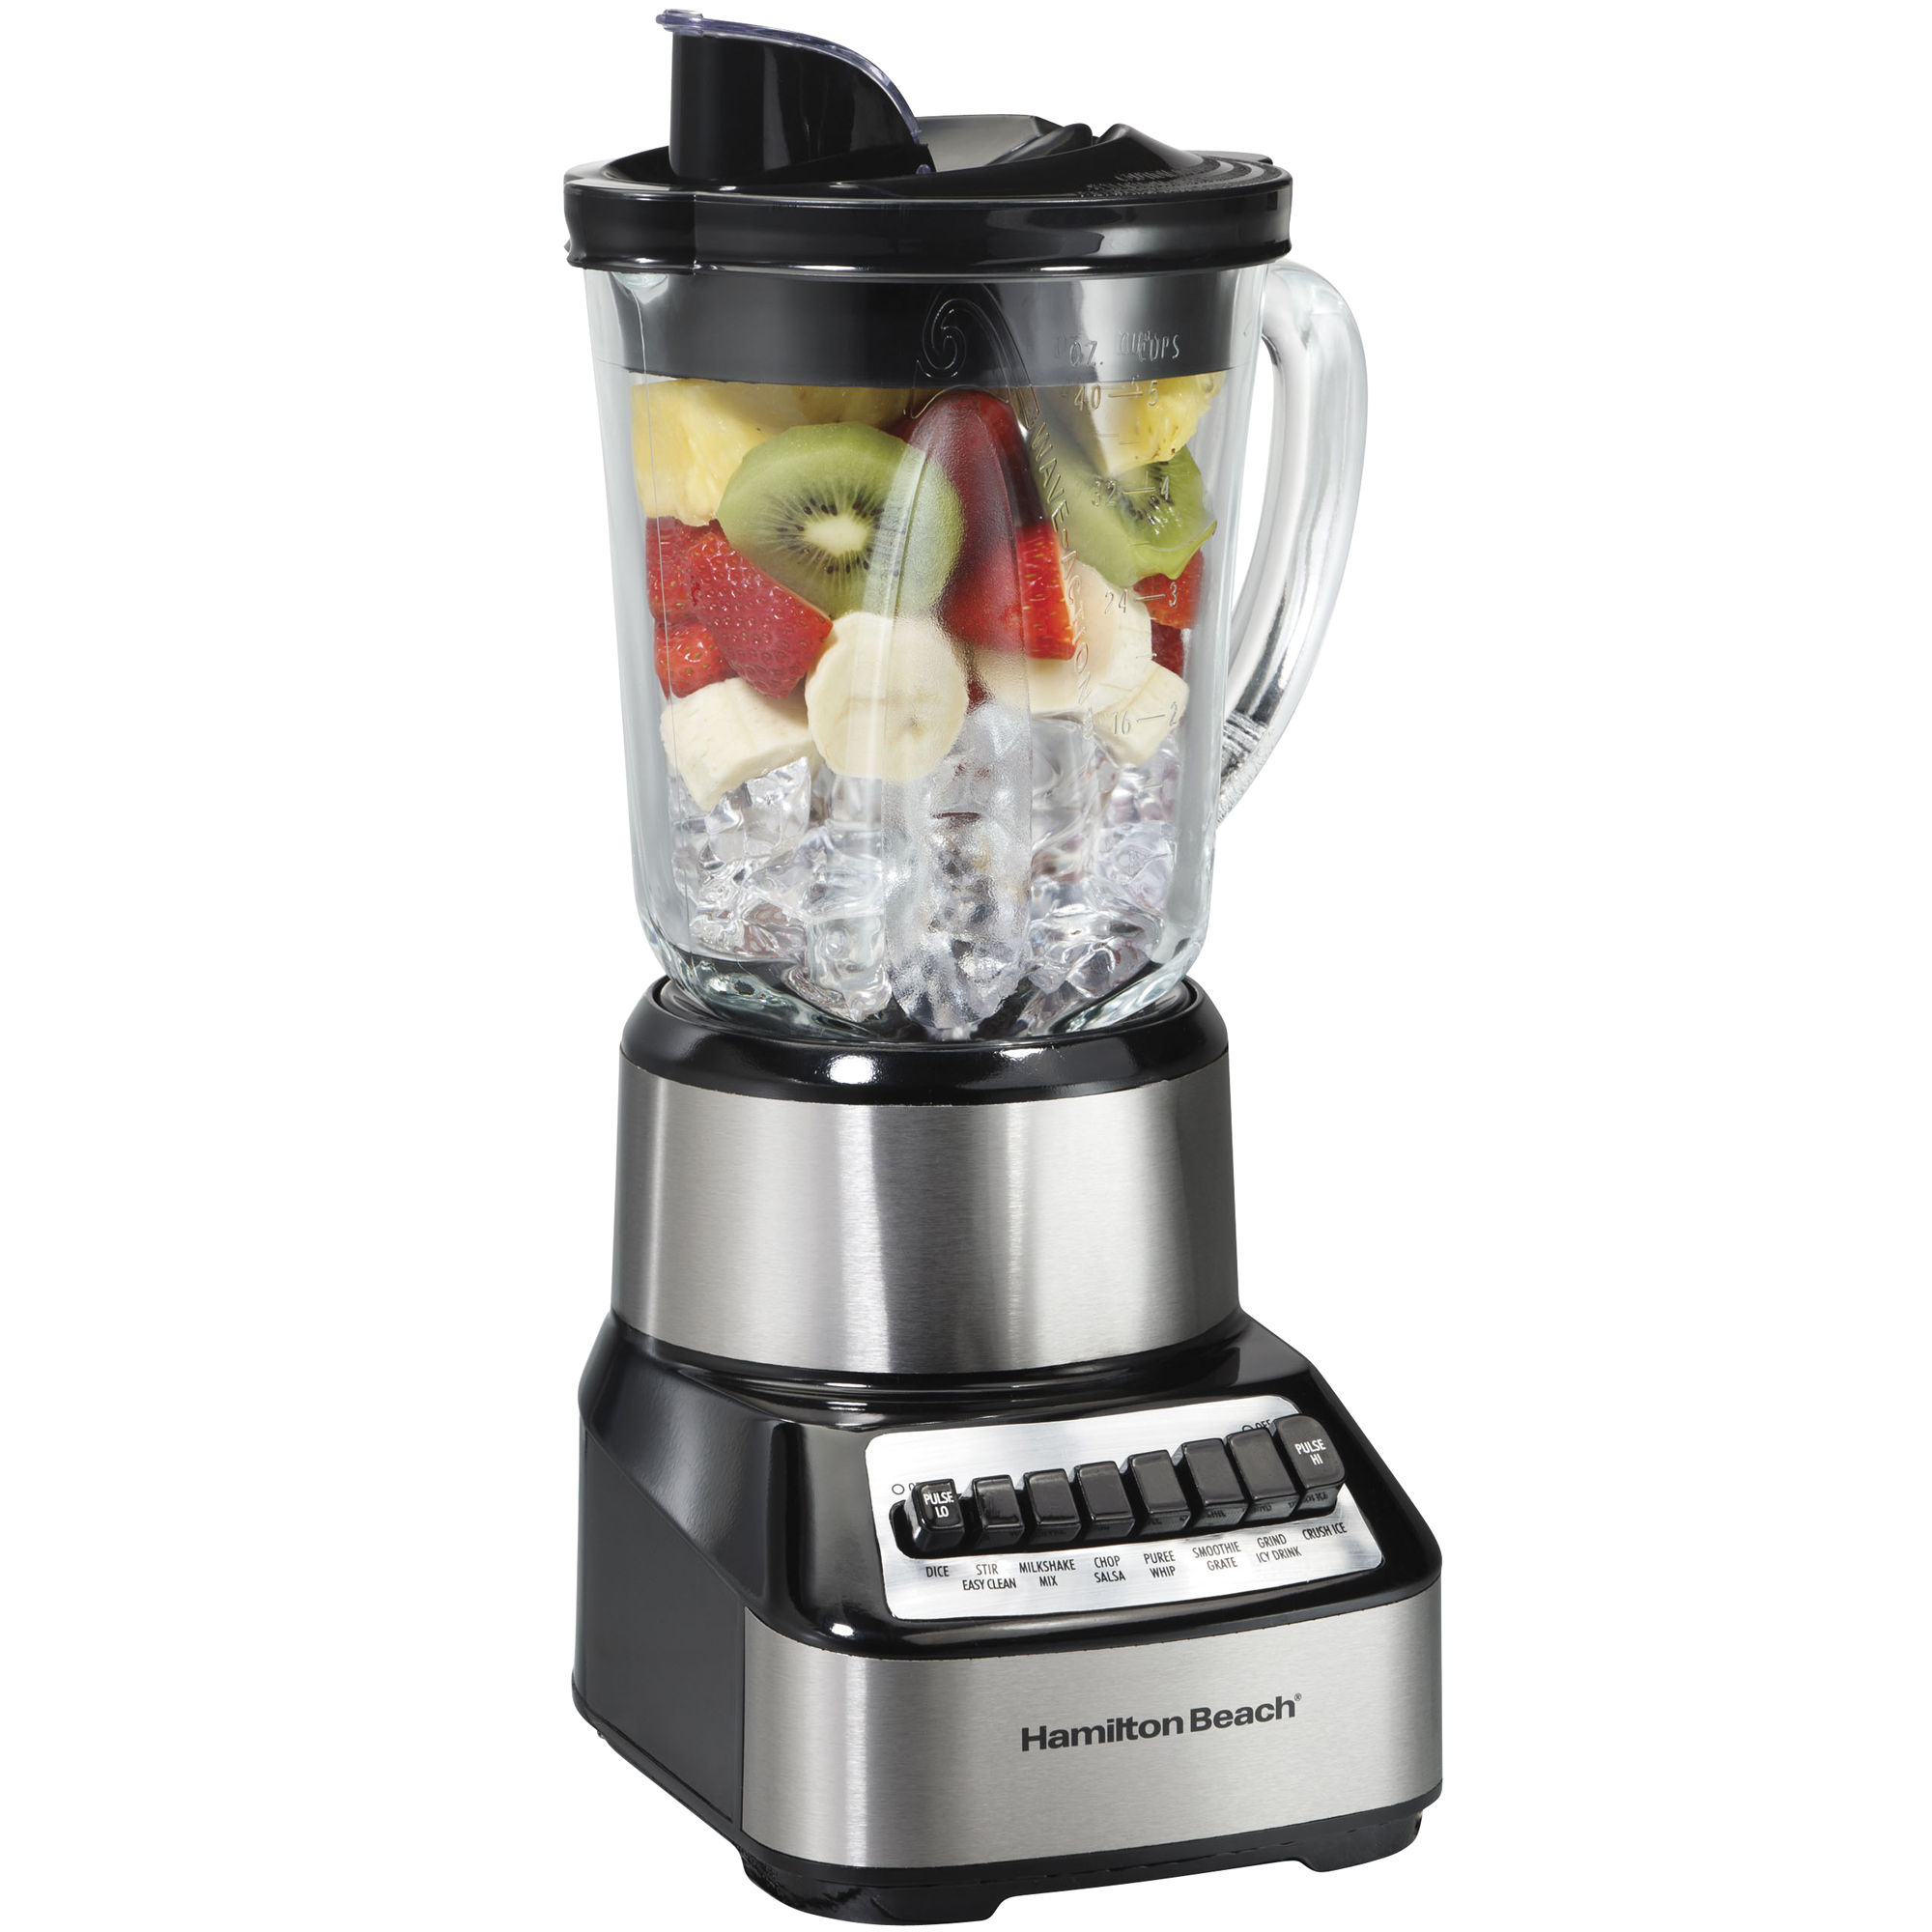 Hamilton Beach Wave Crusher Multi-Function Glass Jar Blender